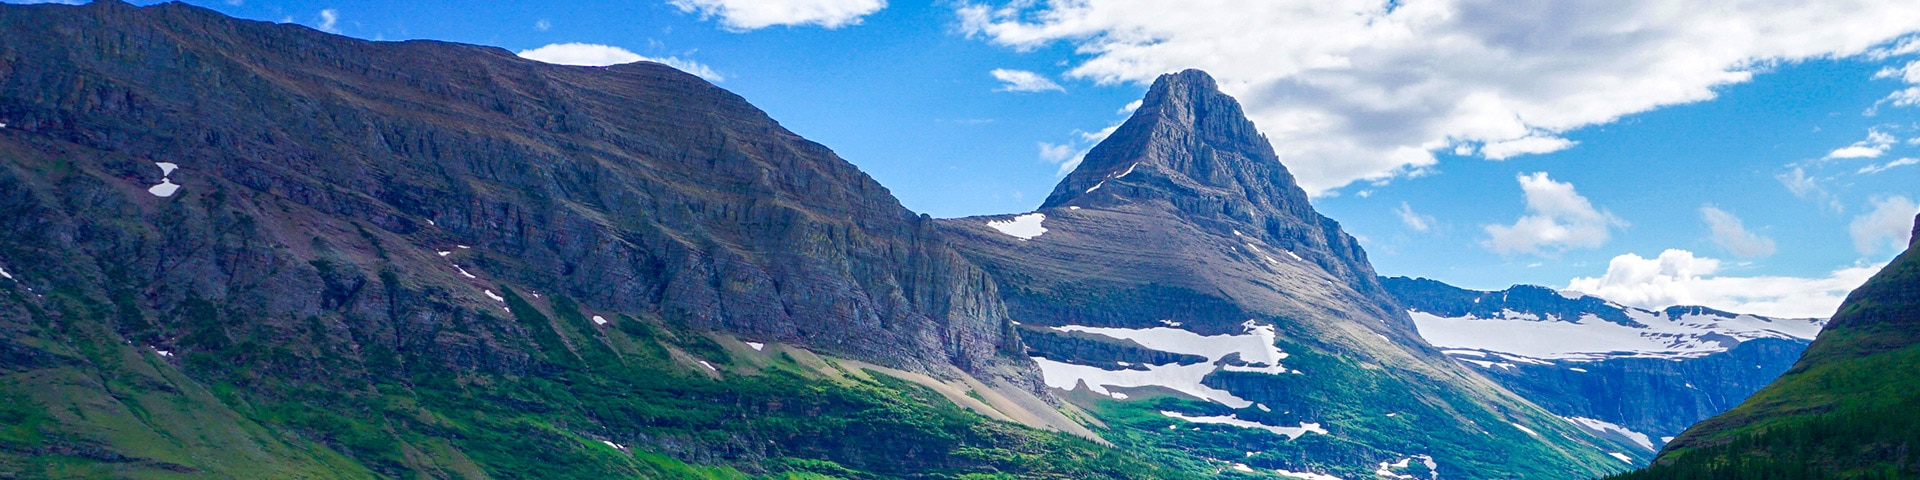 Panorama from the Iceberg Lake hike in Glacier National Park, Montana